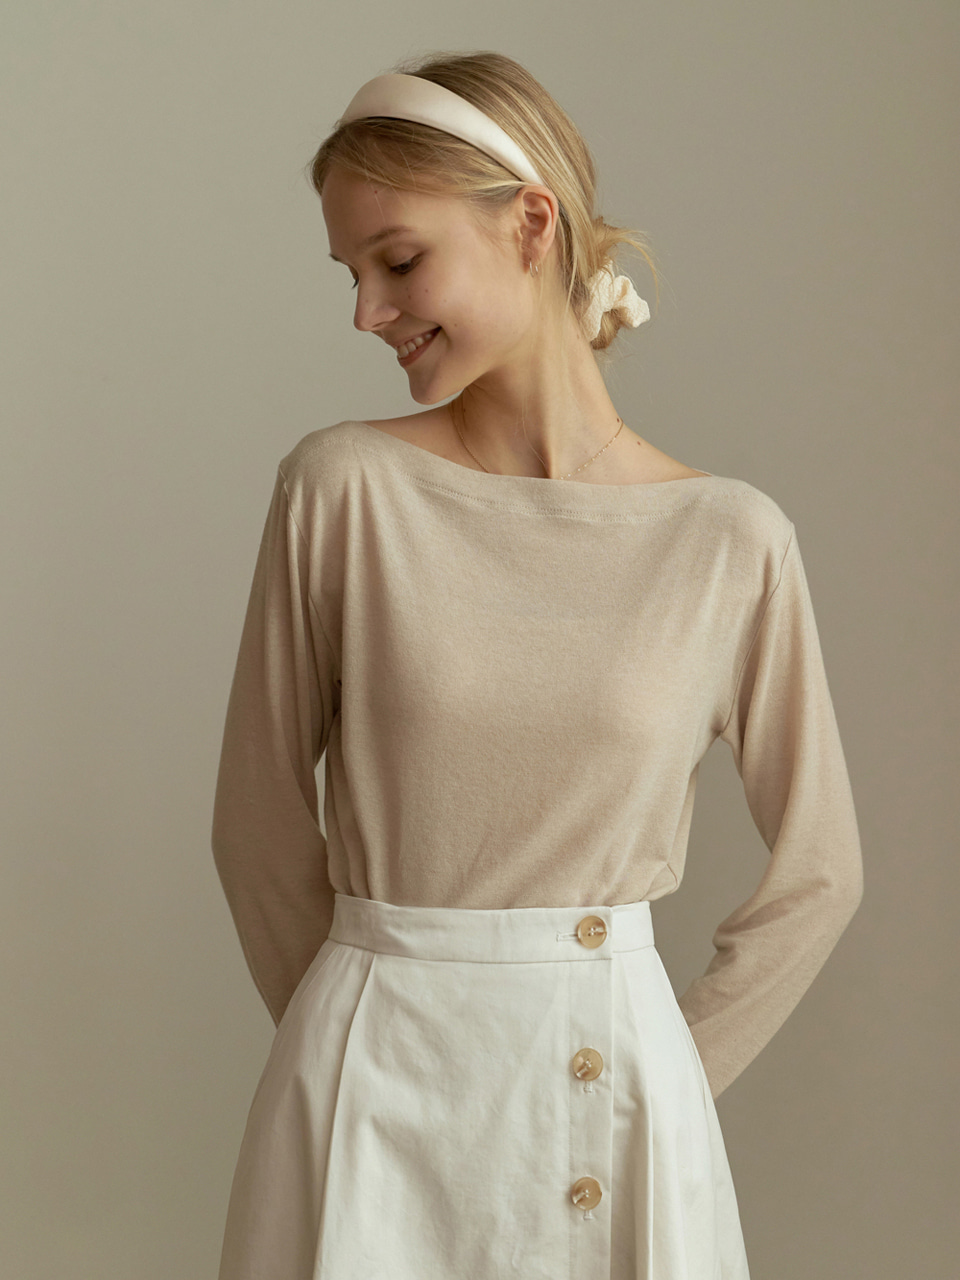 [ESSENTIAL]2.56 LINE KNIT TOP_BEIGE